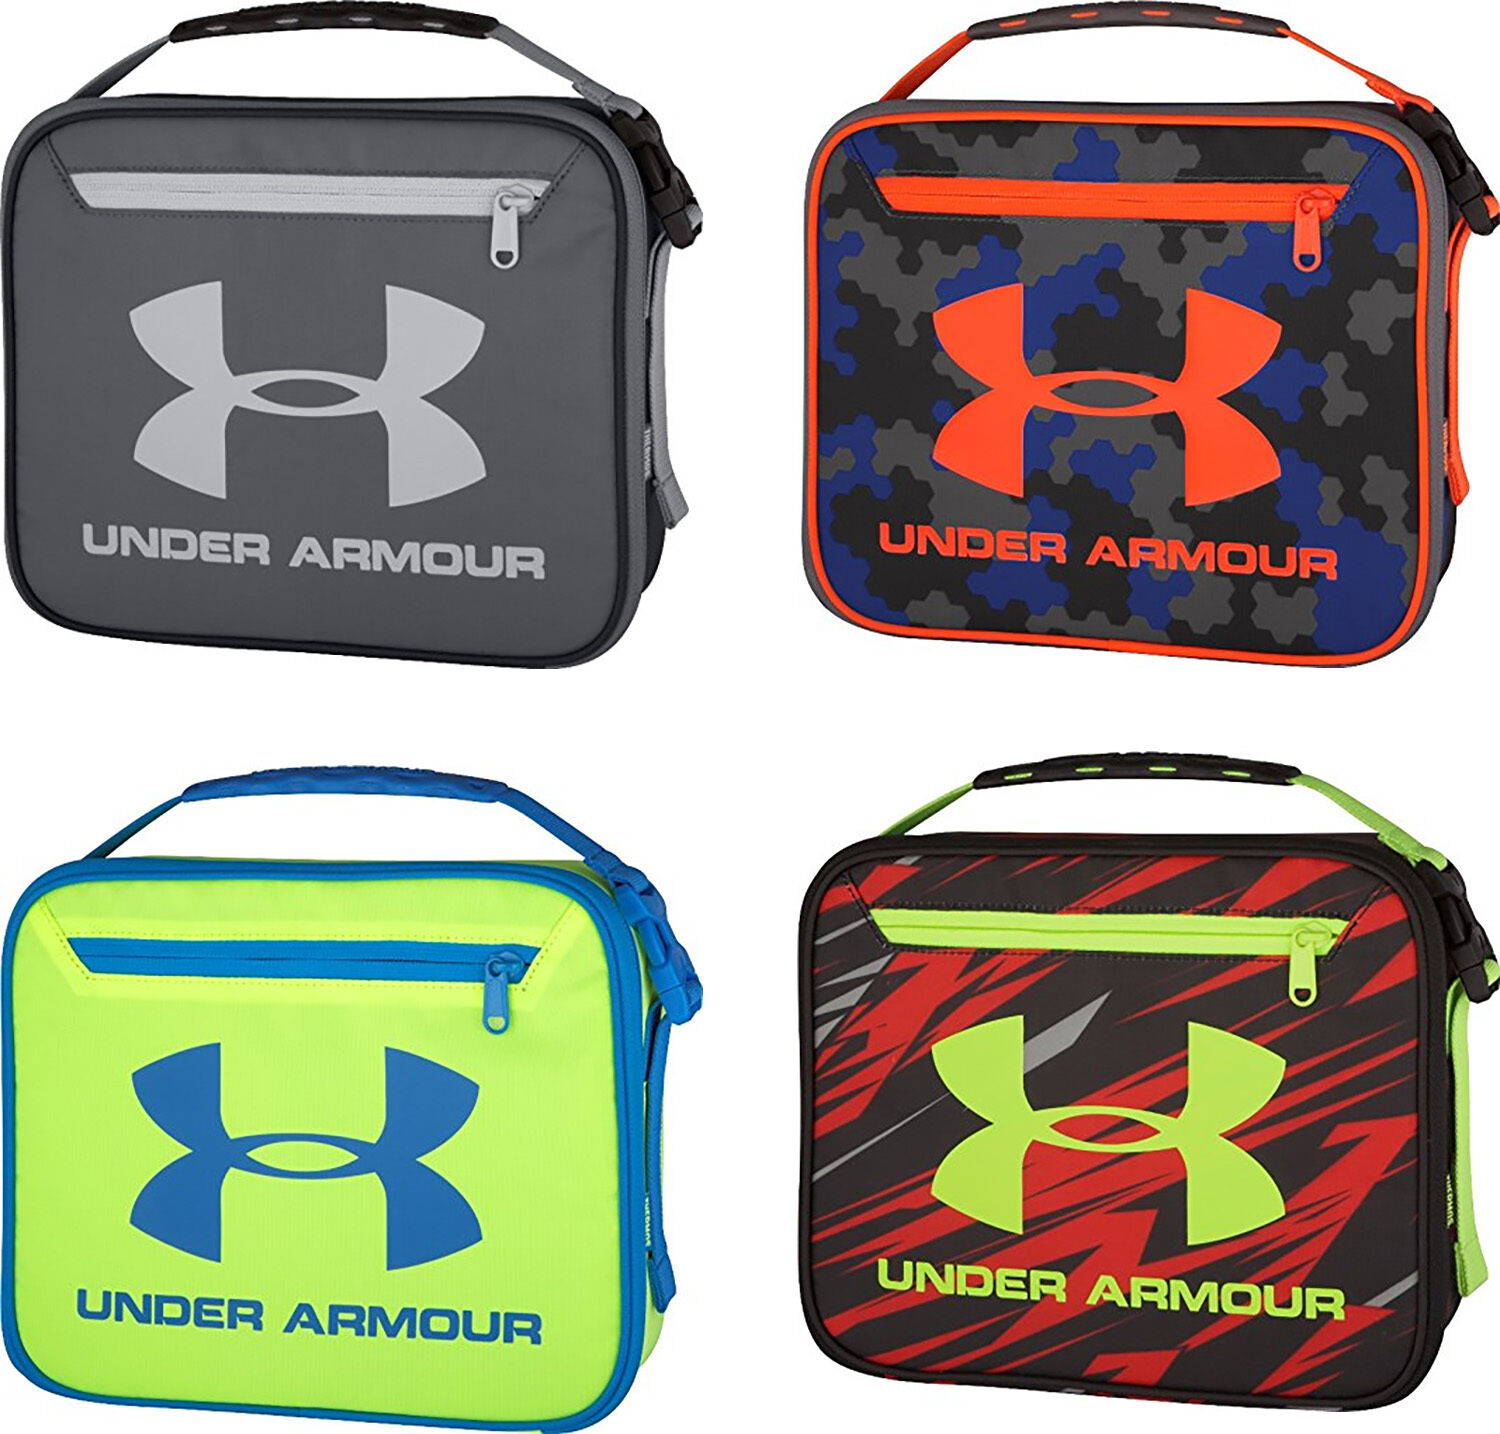 2c309f44 Under Armour Lunch Cooler, 13 Colors | eBay